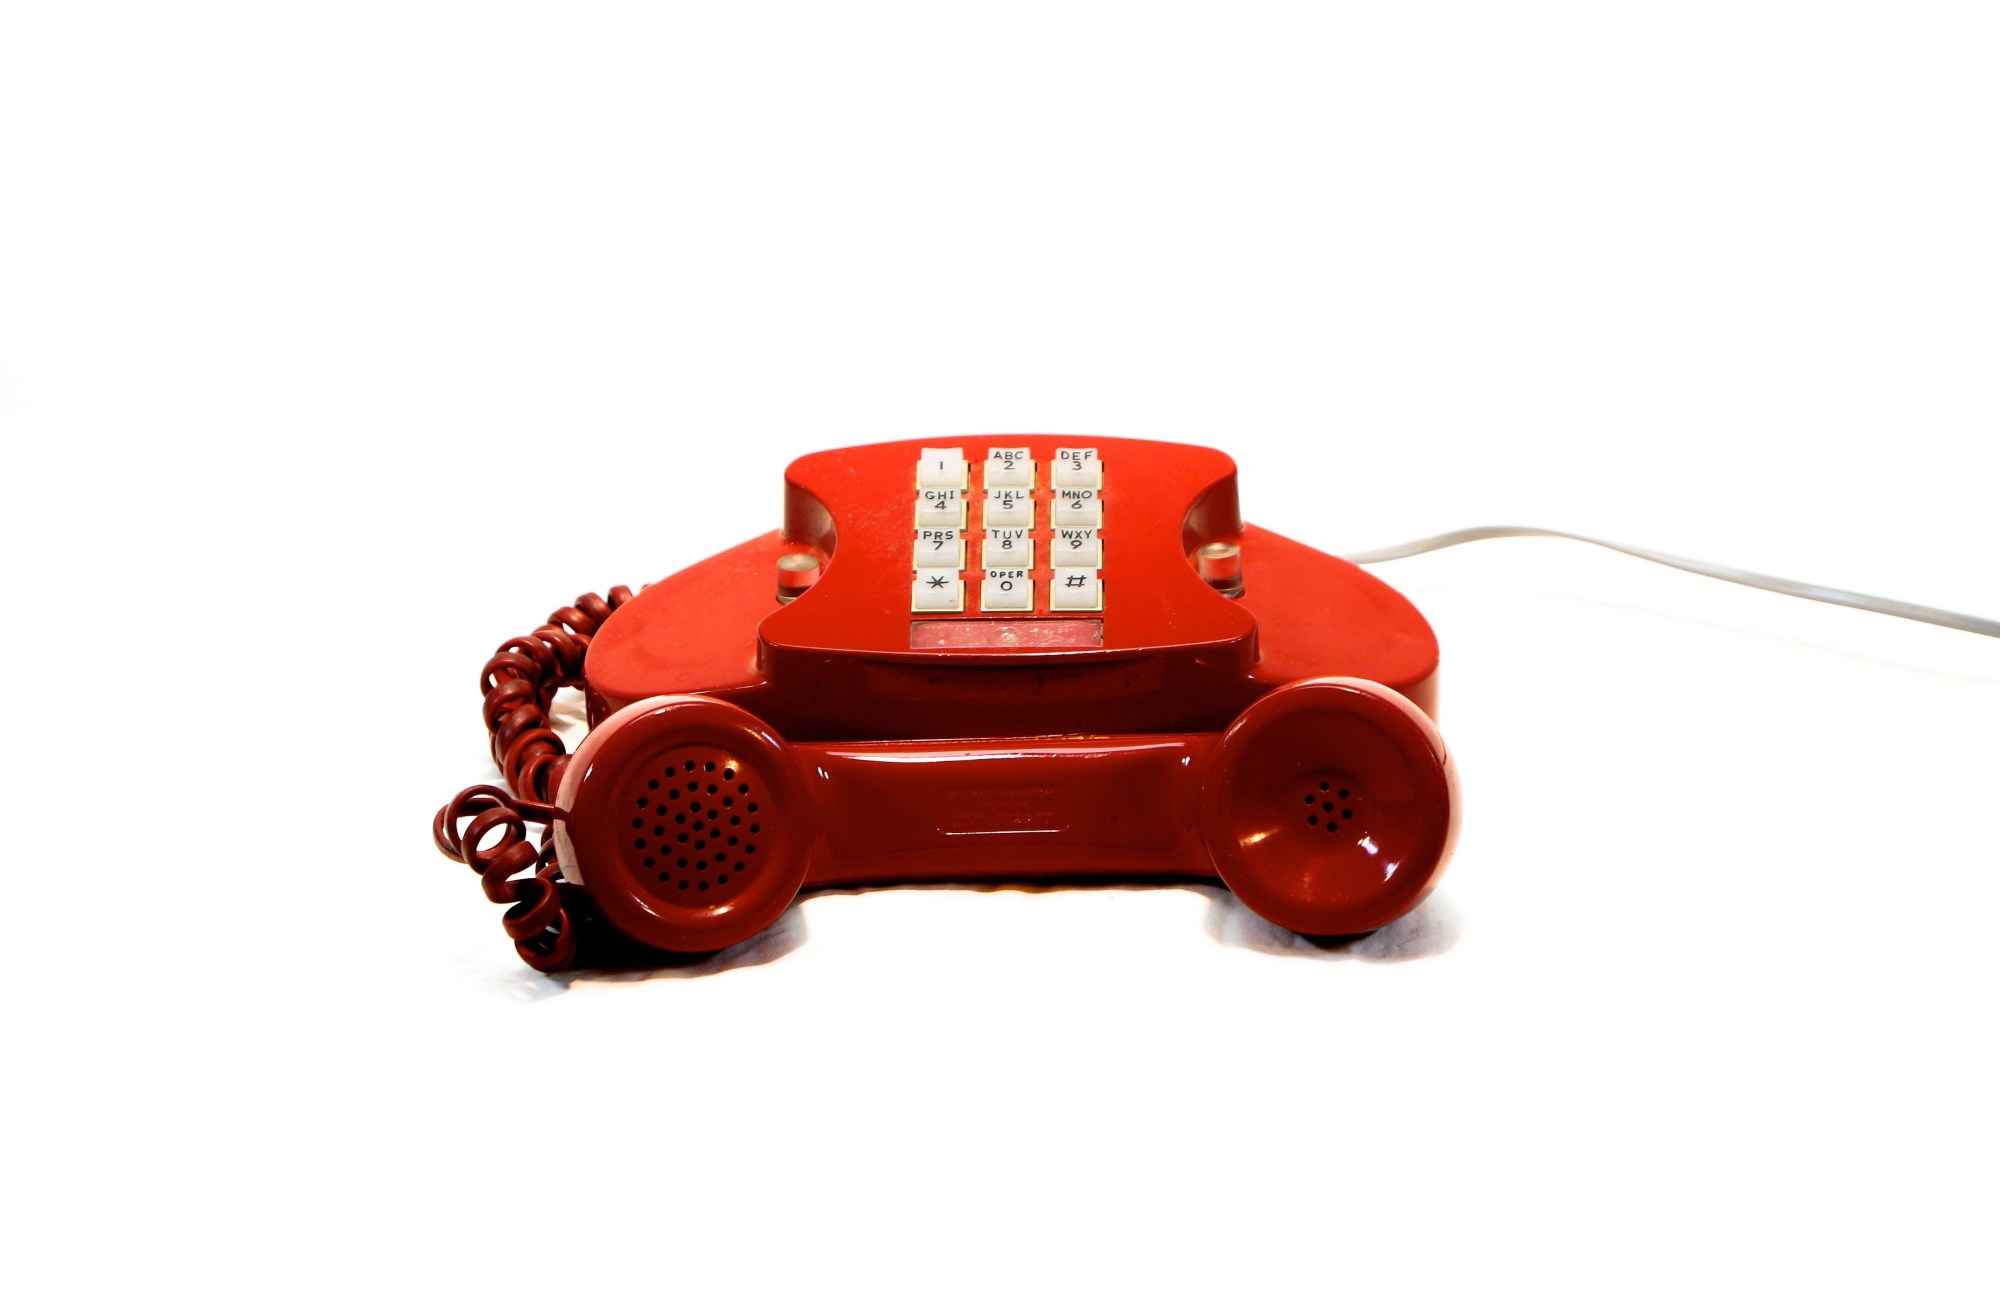 hight resolution of red princess rotary phone image alex suskind barry suskind